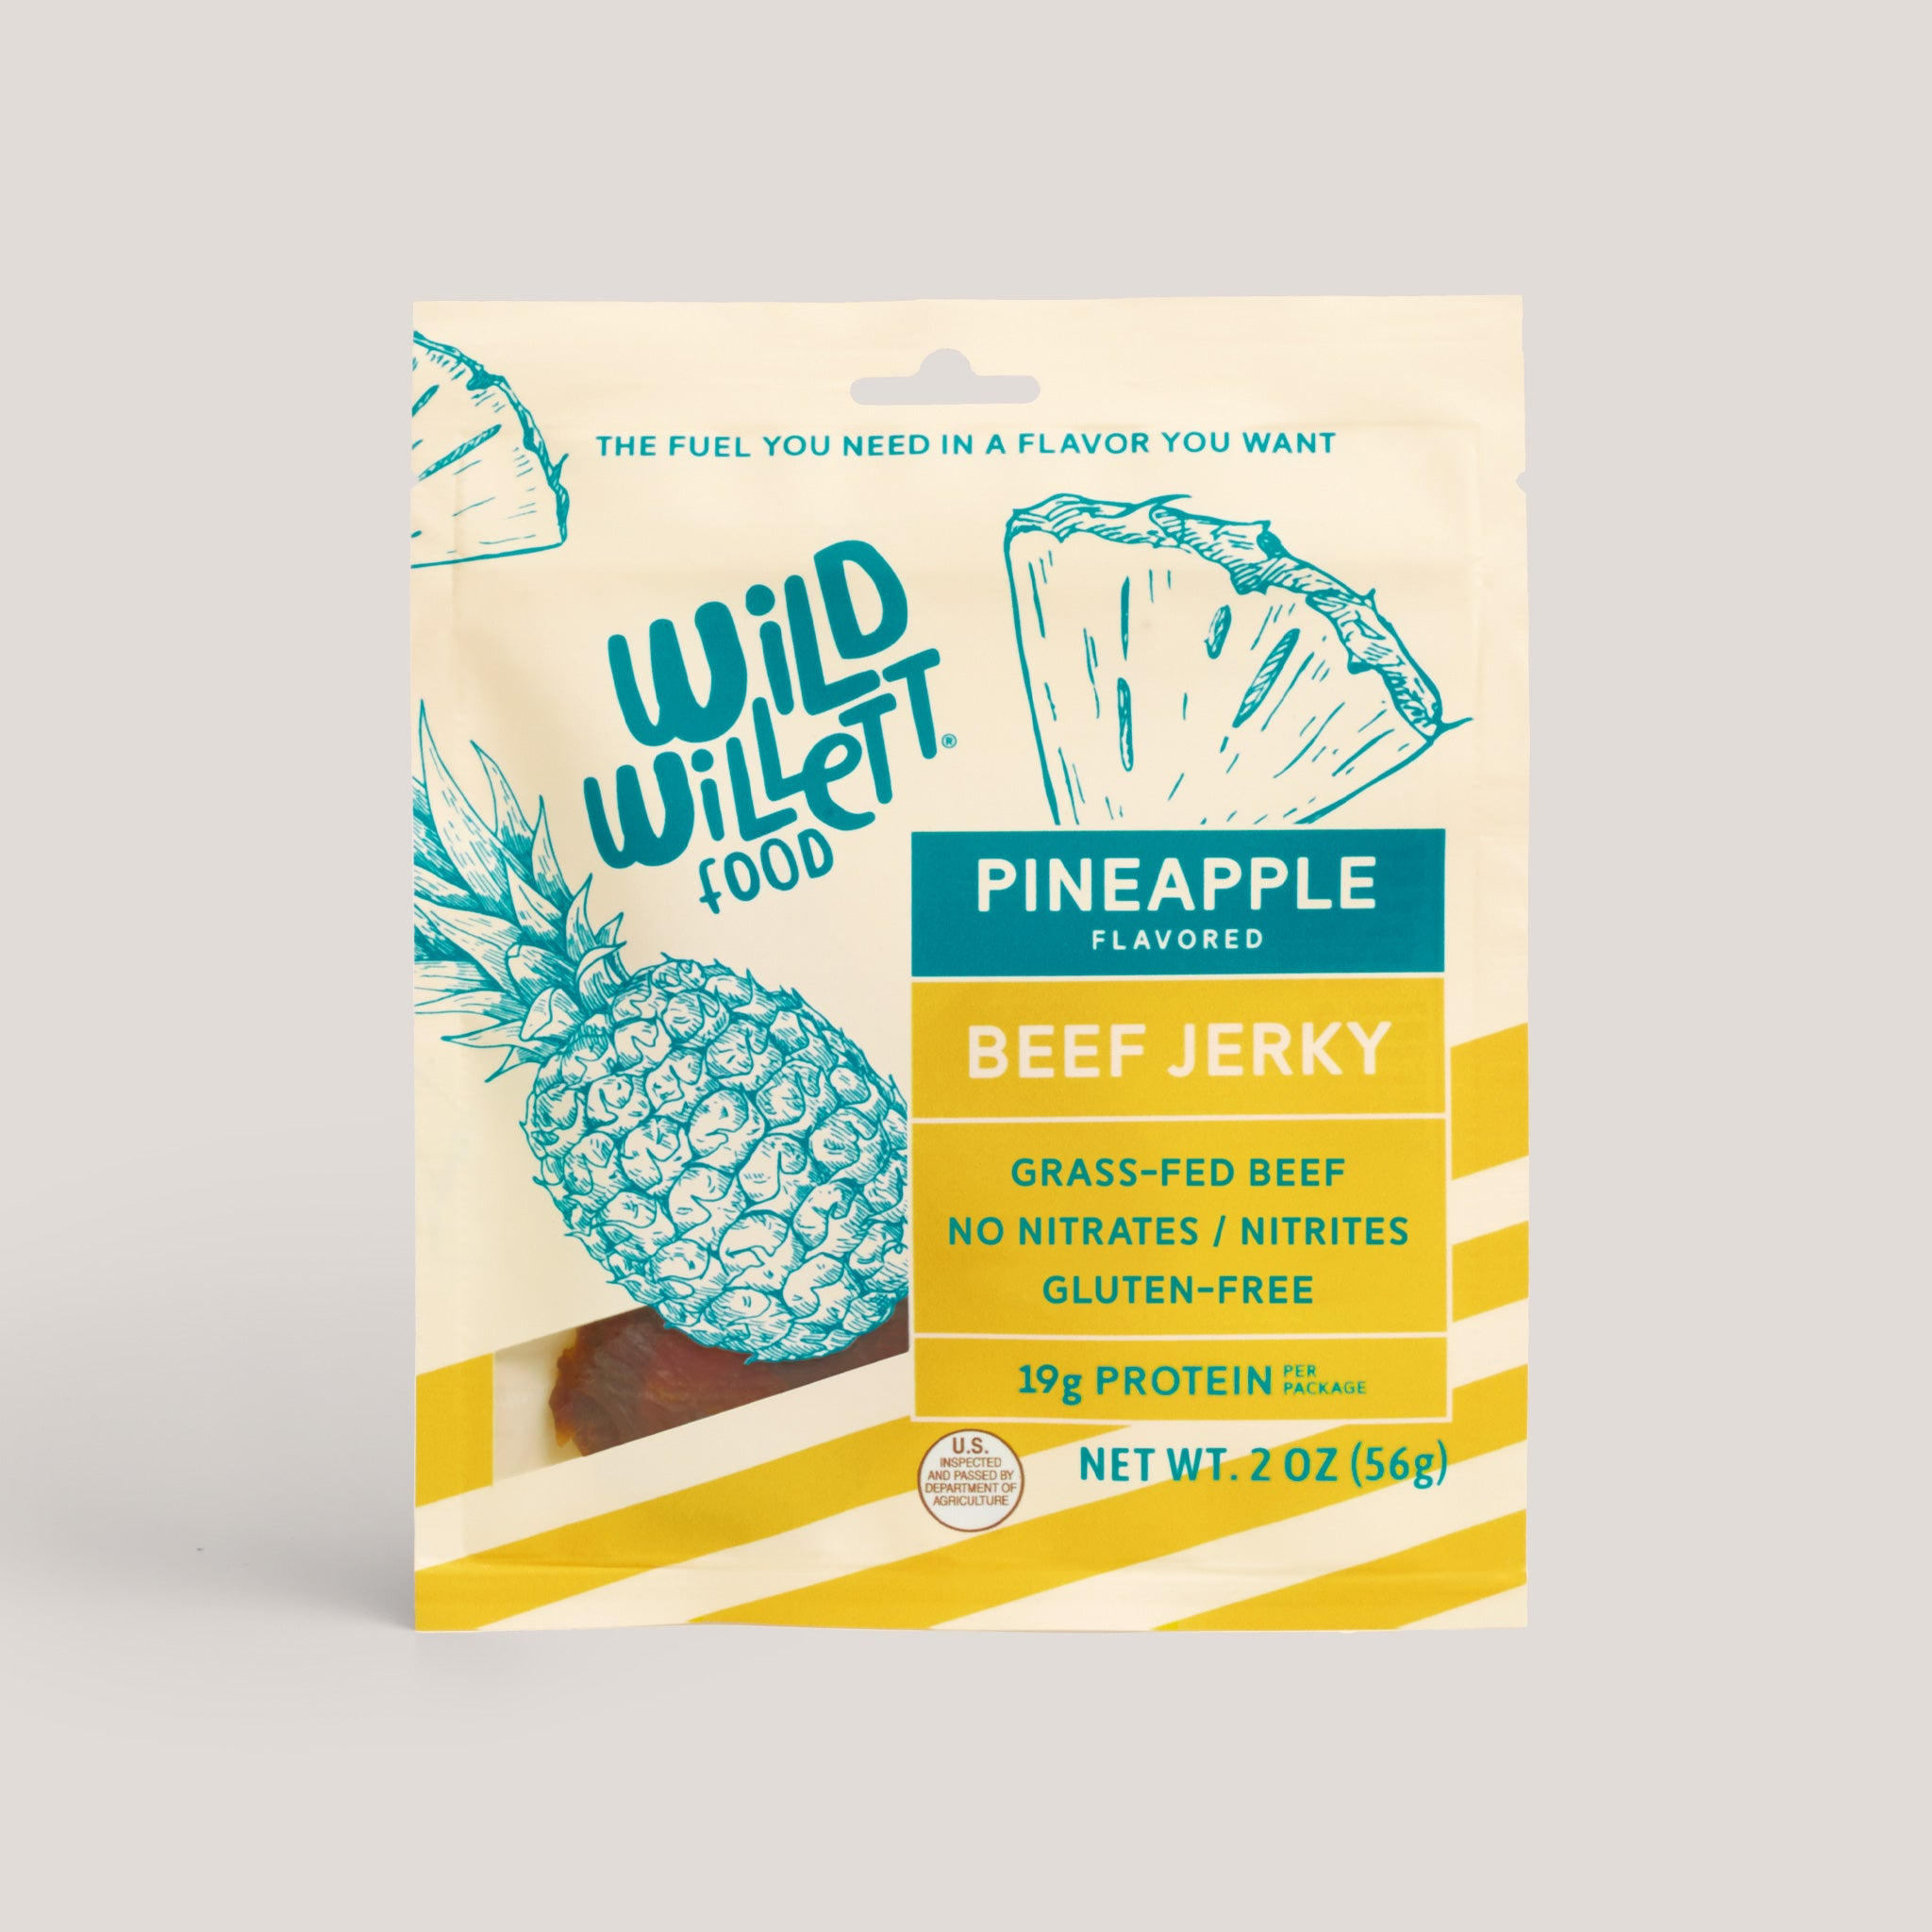 Pineapple Grass-Fed Beef Jerky